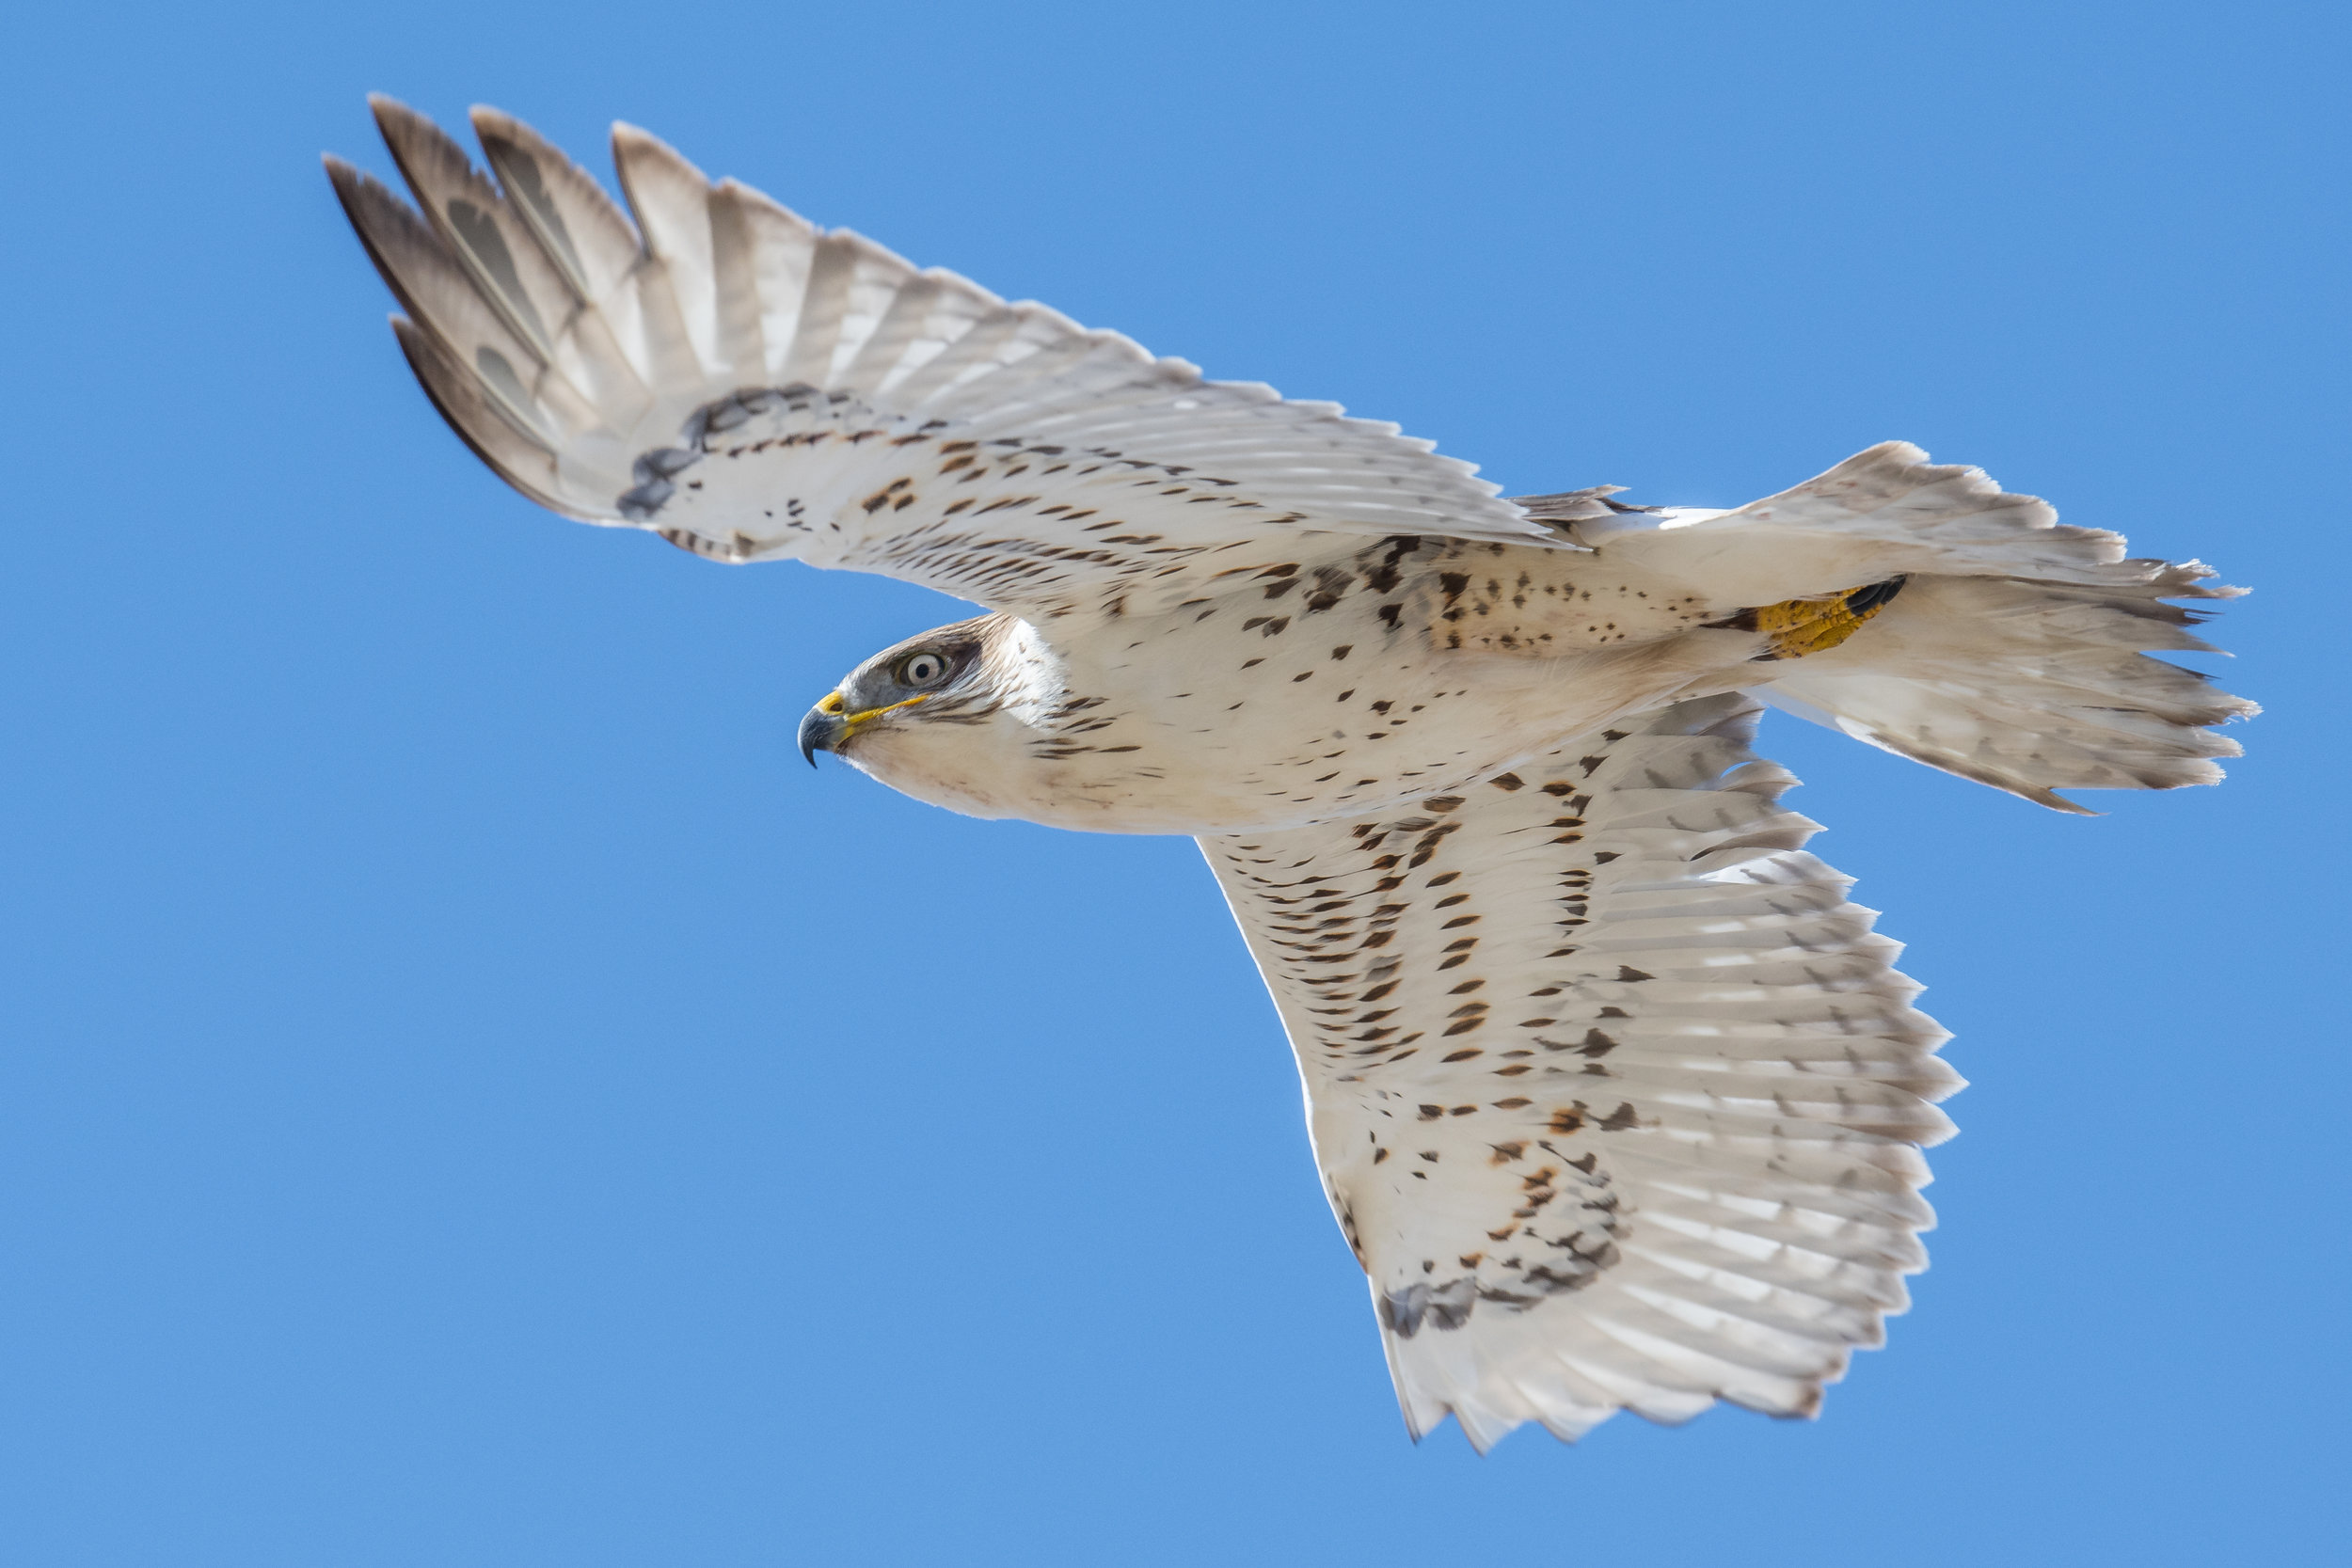 Ferruginous Hawk (Buteo regalis), Washoe Lake SP, WAS (NV), 01-09-2019  I found a pair of Ferruginous Hawk on the east side of Washoe Lake on the top of power line poles. I was able to capture this one as it took flight (D500 with 500mm f/4 lens, 750mm focal length, 1/1600s, f/5.6, ISO320, +.3EV).